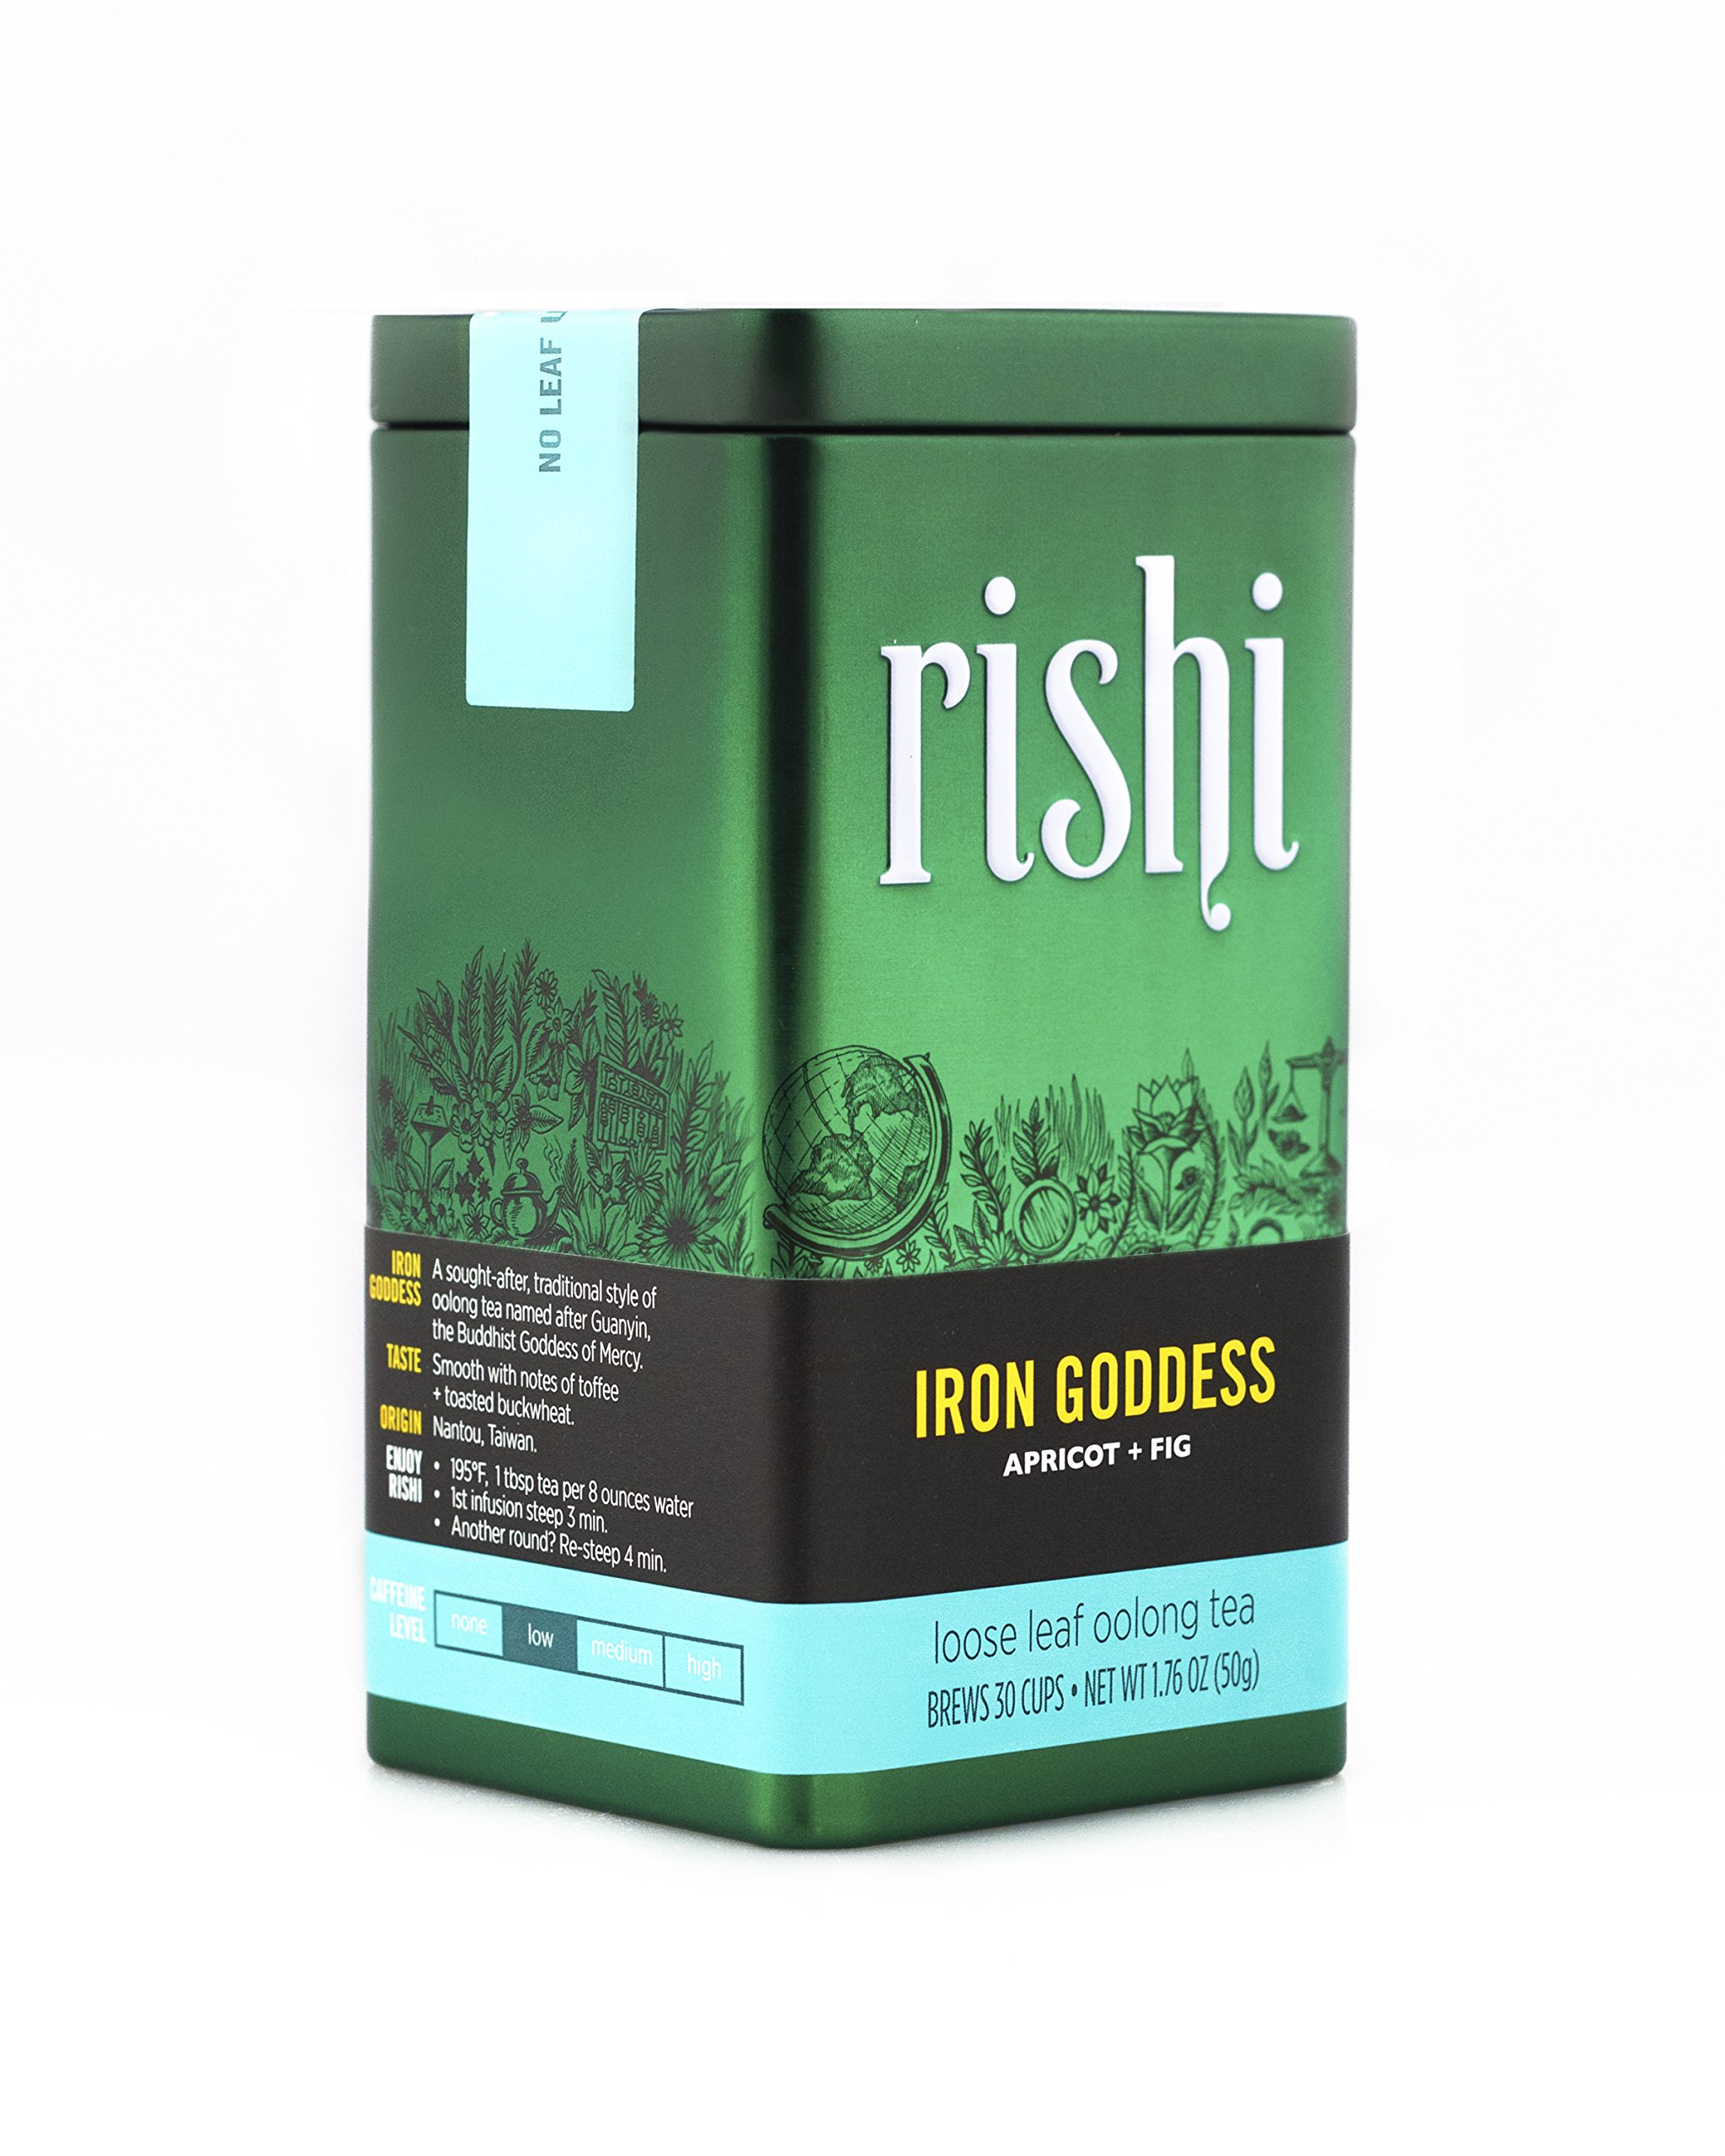 Rishi Tea Iron Goddess of Mercy Loose Leaf Tea, 1.76 Ounces Tin